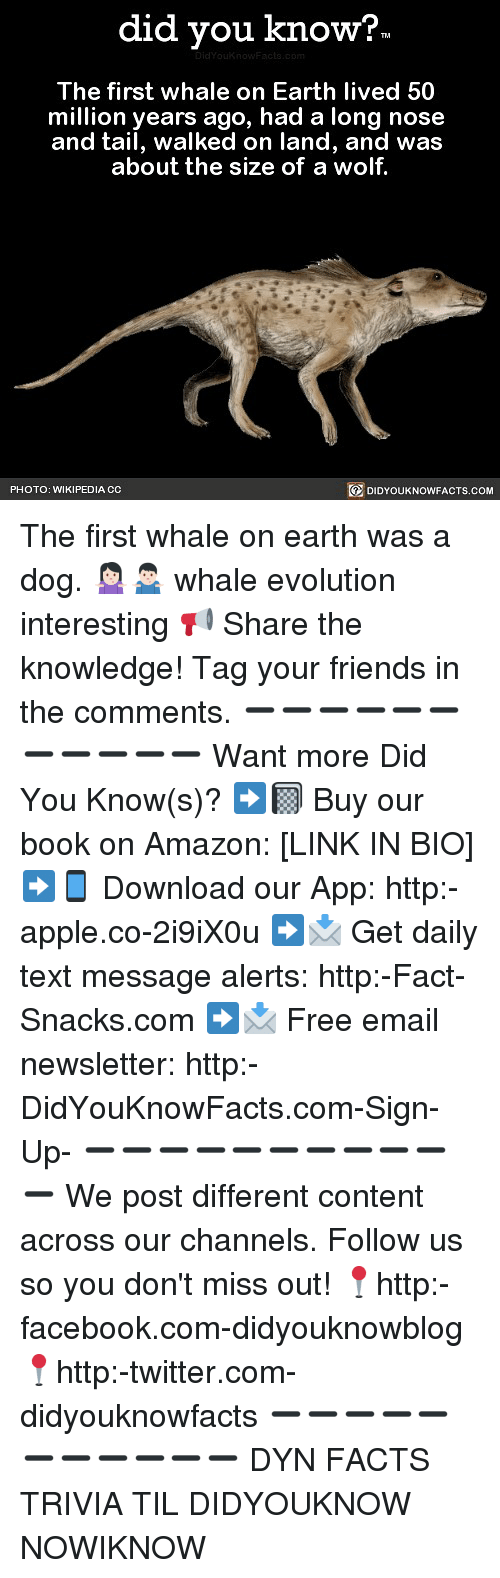 Amazon, Apple, and Facebook: did you know?  The first whale on Earth lived 50  million years ago, had a long nose  and tail, walked on land, and was  about the size of a wolf.  PHOTO: WIKIPEDIA CC  DIDYOUKNOWFACTS.COM The first whale on earth was a dog. 🤷🏻‍♀️🤷🏻‍♂️ whale evolution interesting 📢 Share the knowledge! Tag your friends in the comments. ➖➖➖➖➖➖➖➖➖➖➖ Want more Did You Know(s)? ➡📓 Buy our book on Amazon: [LINK IN BIO] ➡📱 Download our App: http:-apple.co-2i9iX0u ➡📩 Get daily text message alerts: http:-Fact-Snacks.com ➡📩 Free email newsletter: http:-DidYouKnowFacts.com-Sign-Up- ➖➖➖➖➖➖➖➖➖➖➖ We post different content across our channels. Follow us so you don't miss out! 📍http:-facebook.com-didyouknowblog 📍http:-twitter.com-didyouknowfacts ➖➖➖➖➖➖➖➖➖➖➖ DYN FACTS TRIVIA TIL DIDYOUKNOW NOWIKNOW